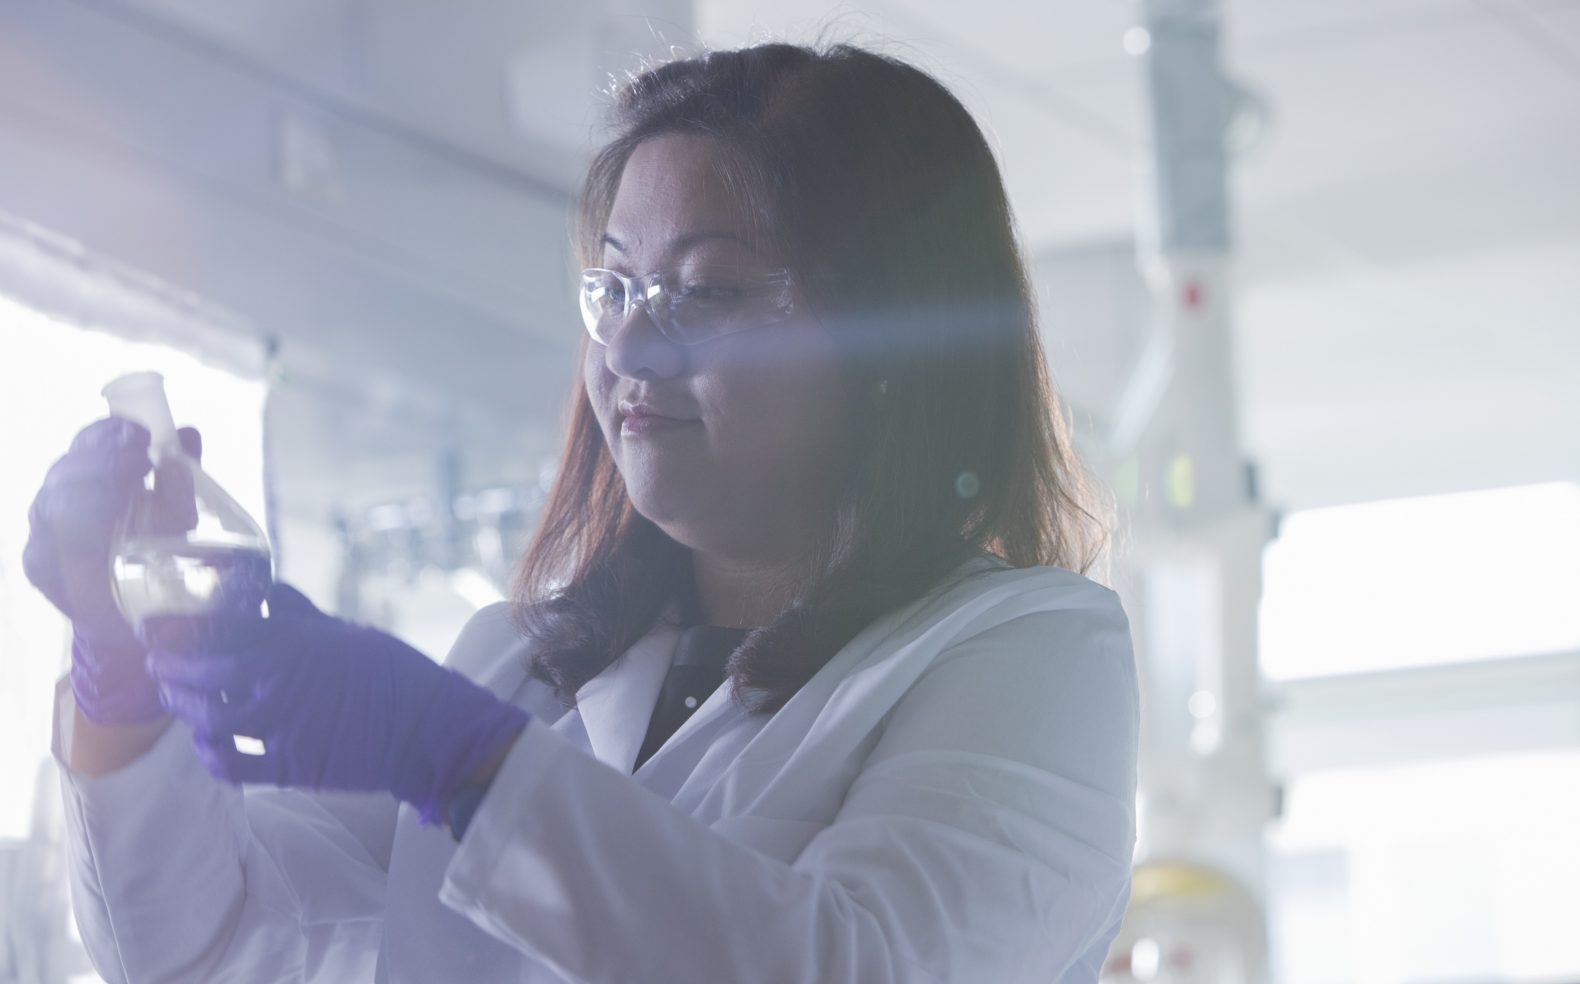 Professional photograph of a scientist examining a sample in a lab